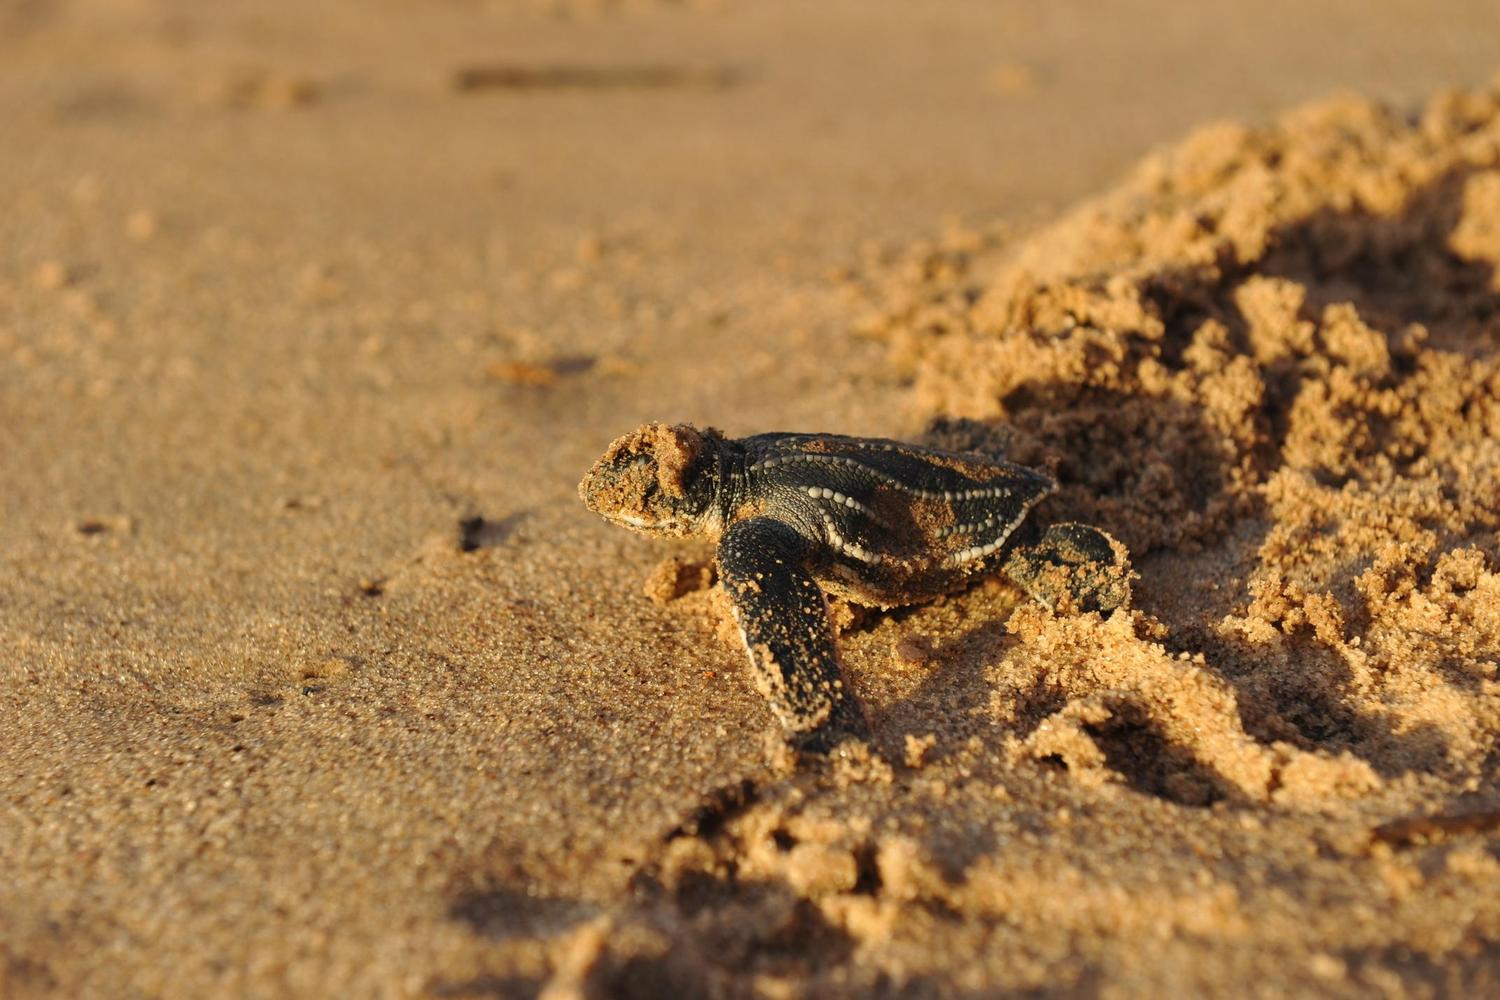 A newly hatched turtle heads seawards in Costa Rica